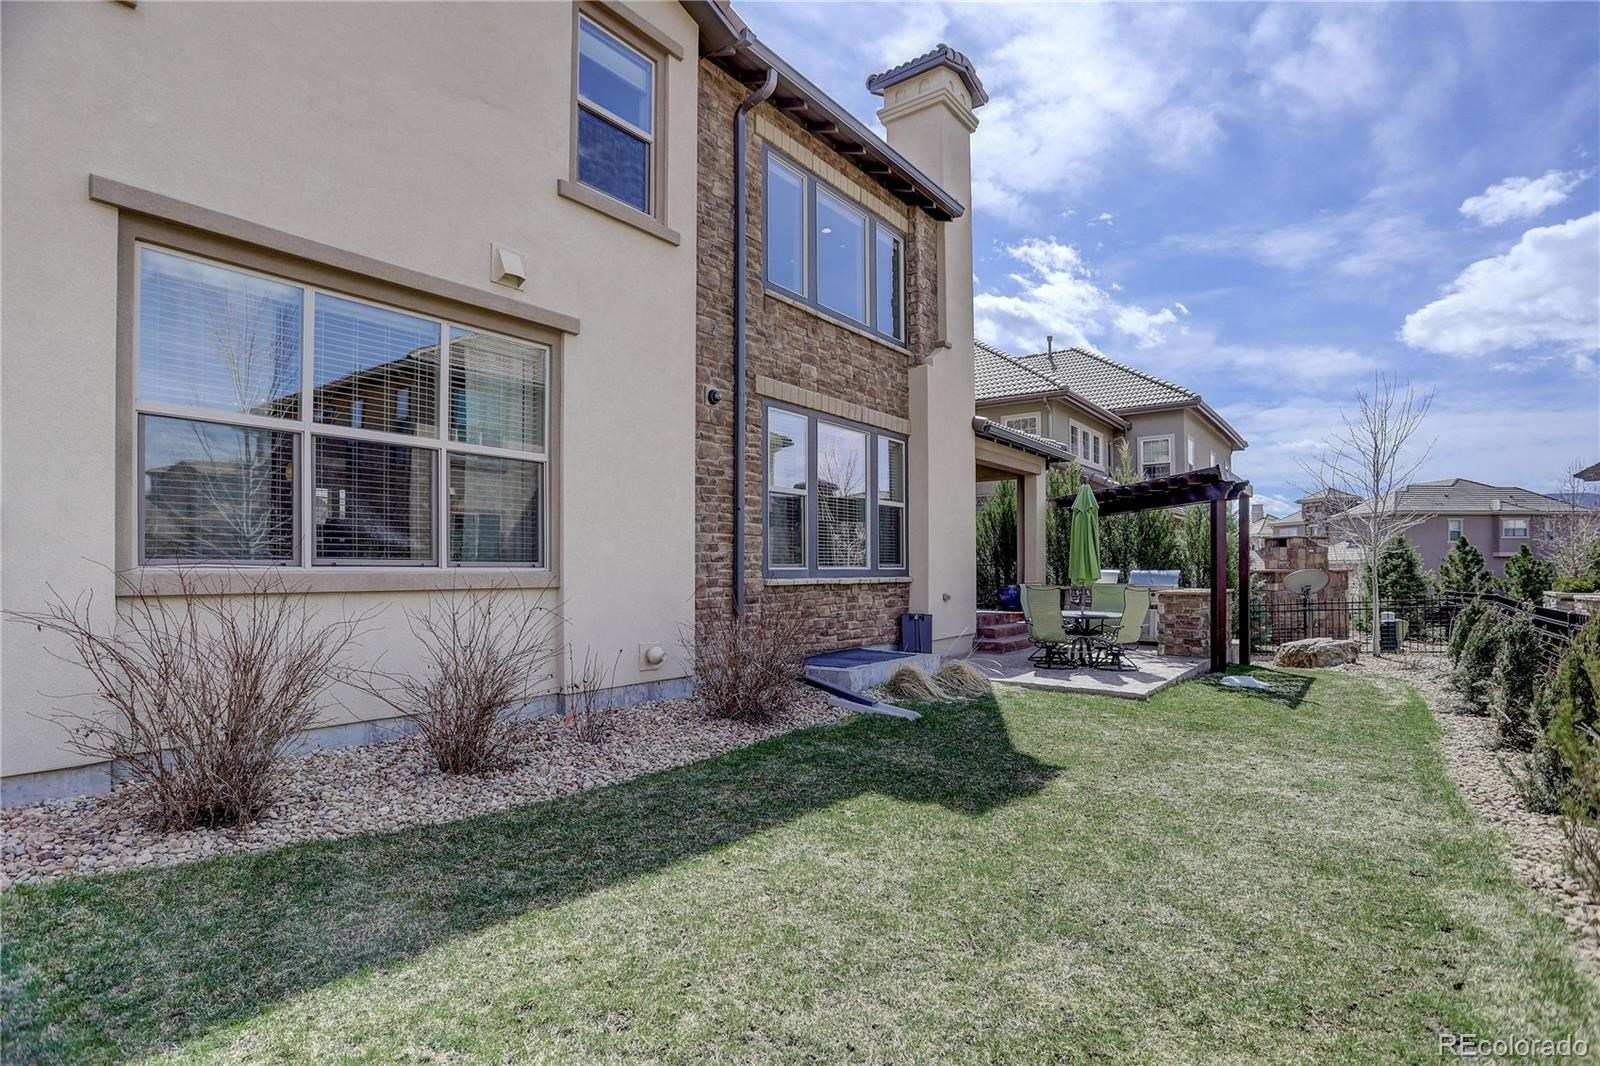 MLS# 8360577 - 2 - 2247 S Isabell Court, Lakewood, CO 80228